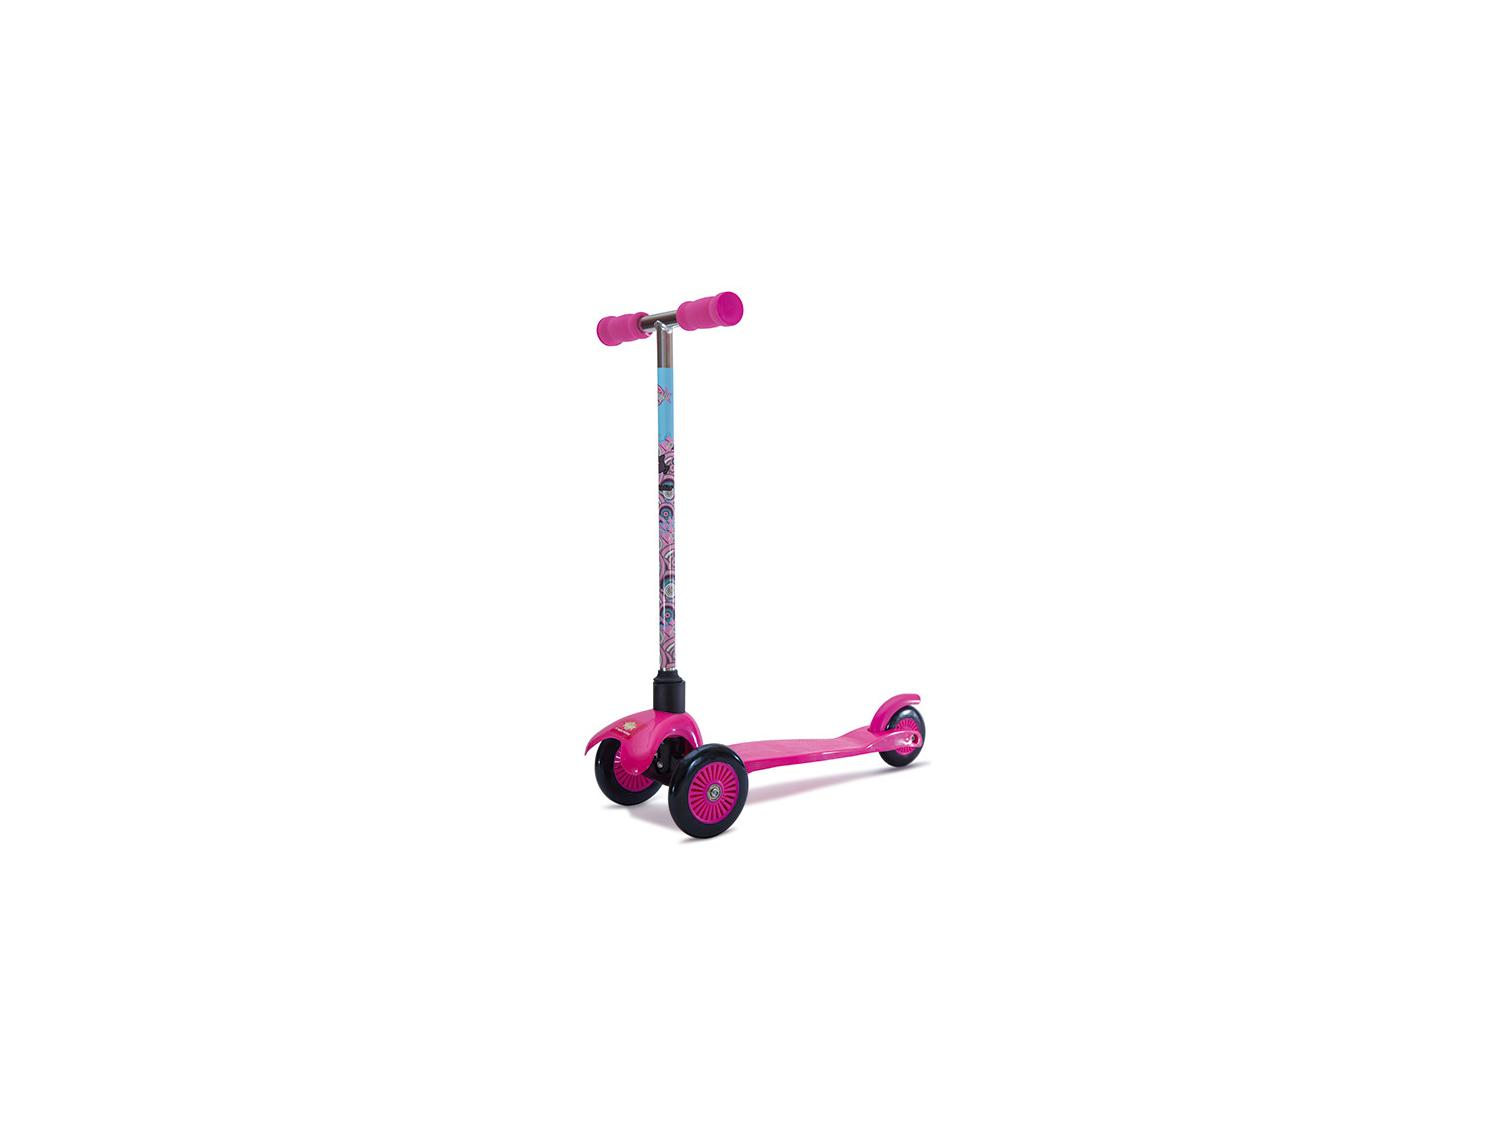 trotinet-romobil-002d4-pink-3-scooter